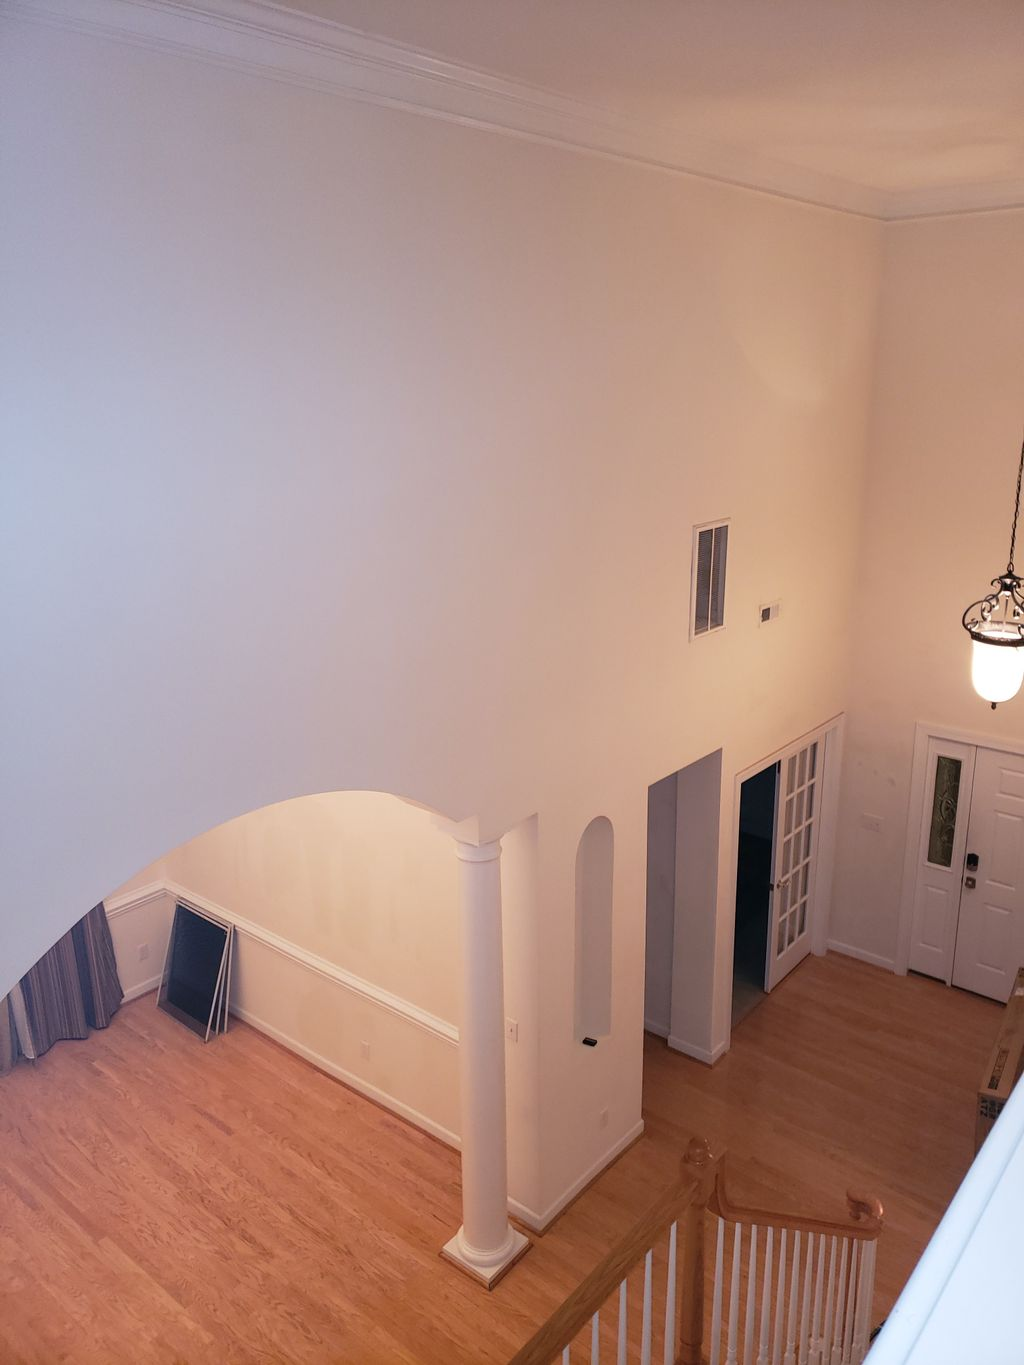 Entire Home Interior painting